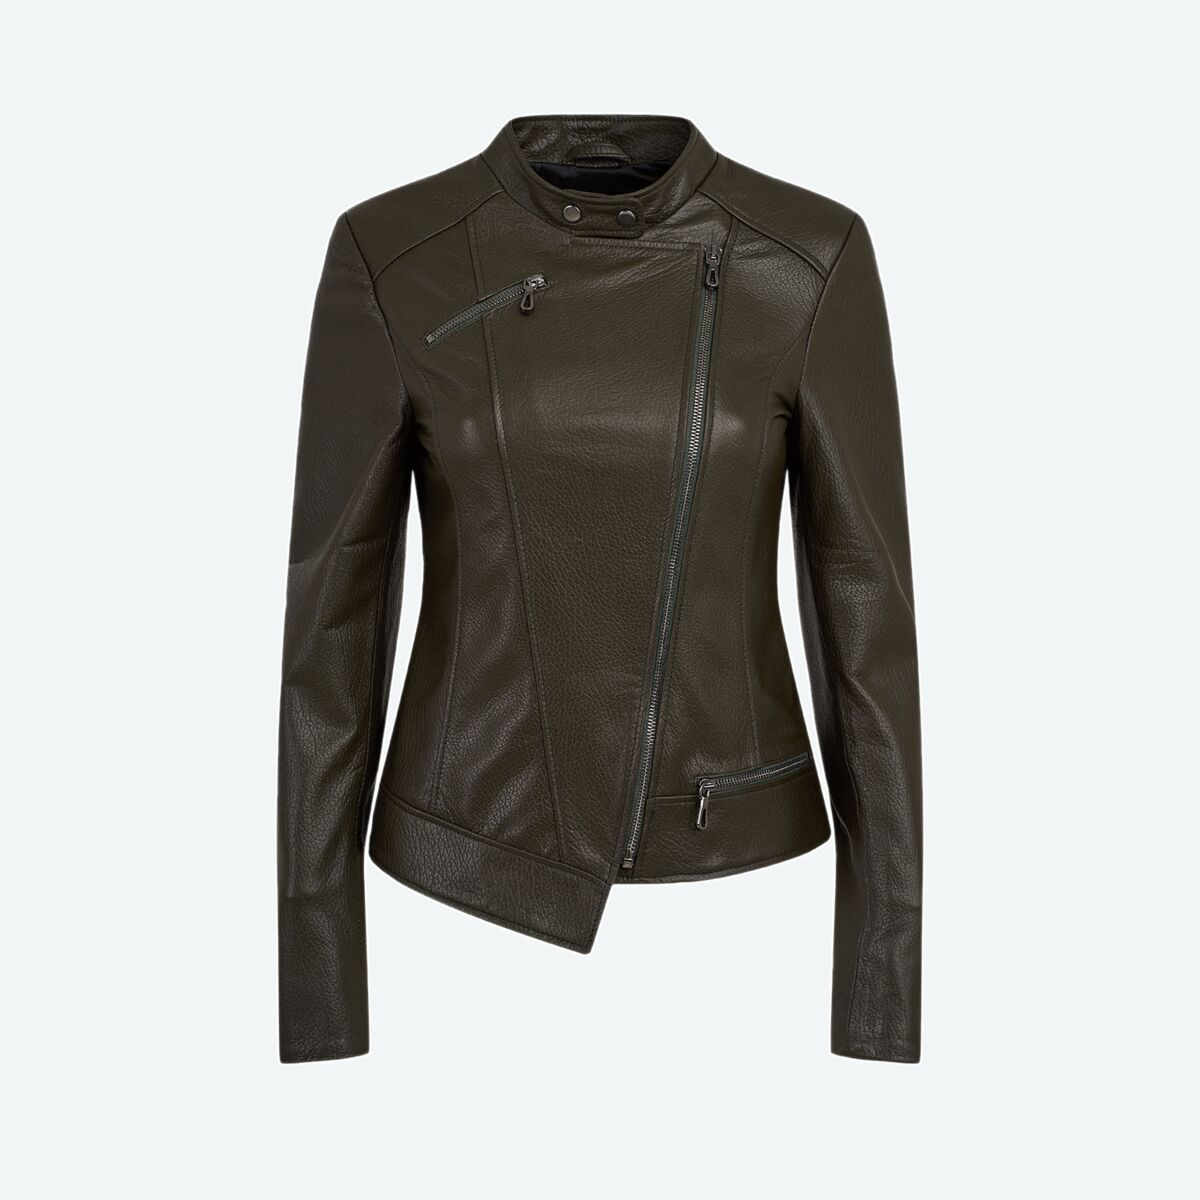 Women's Asymmetric Leather Jacket - Olive Green